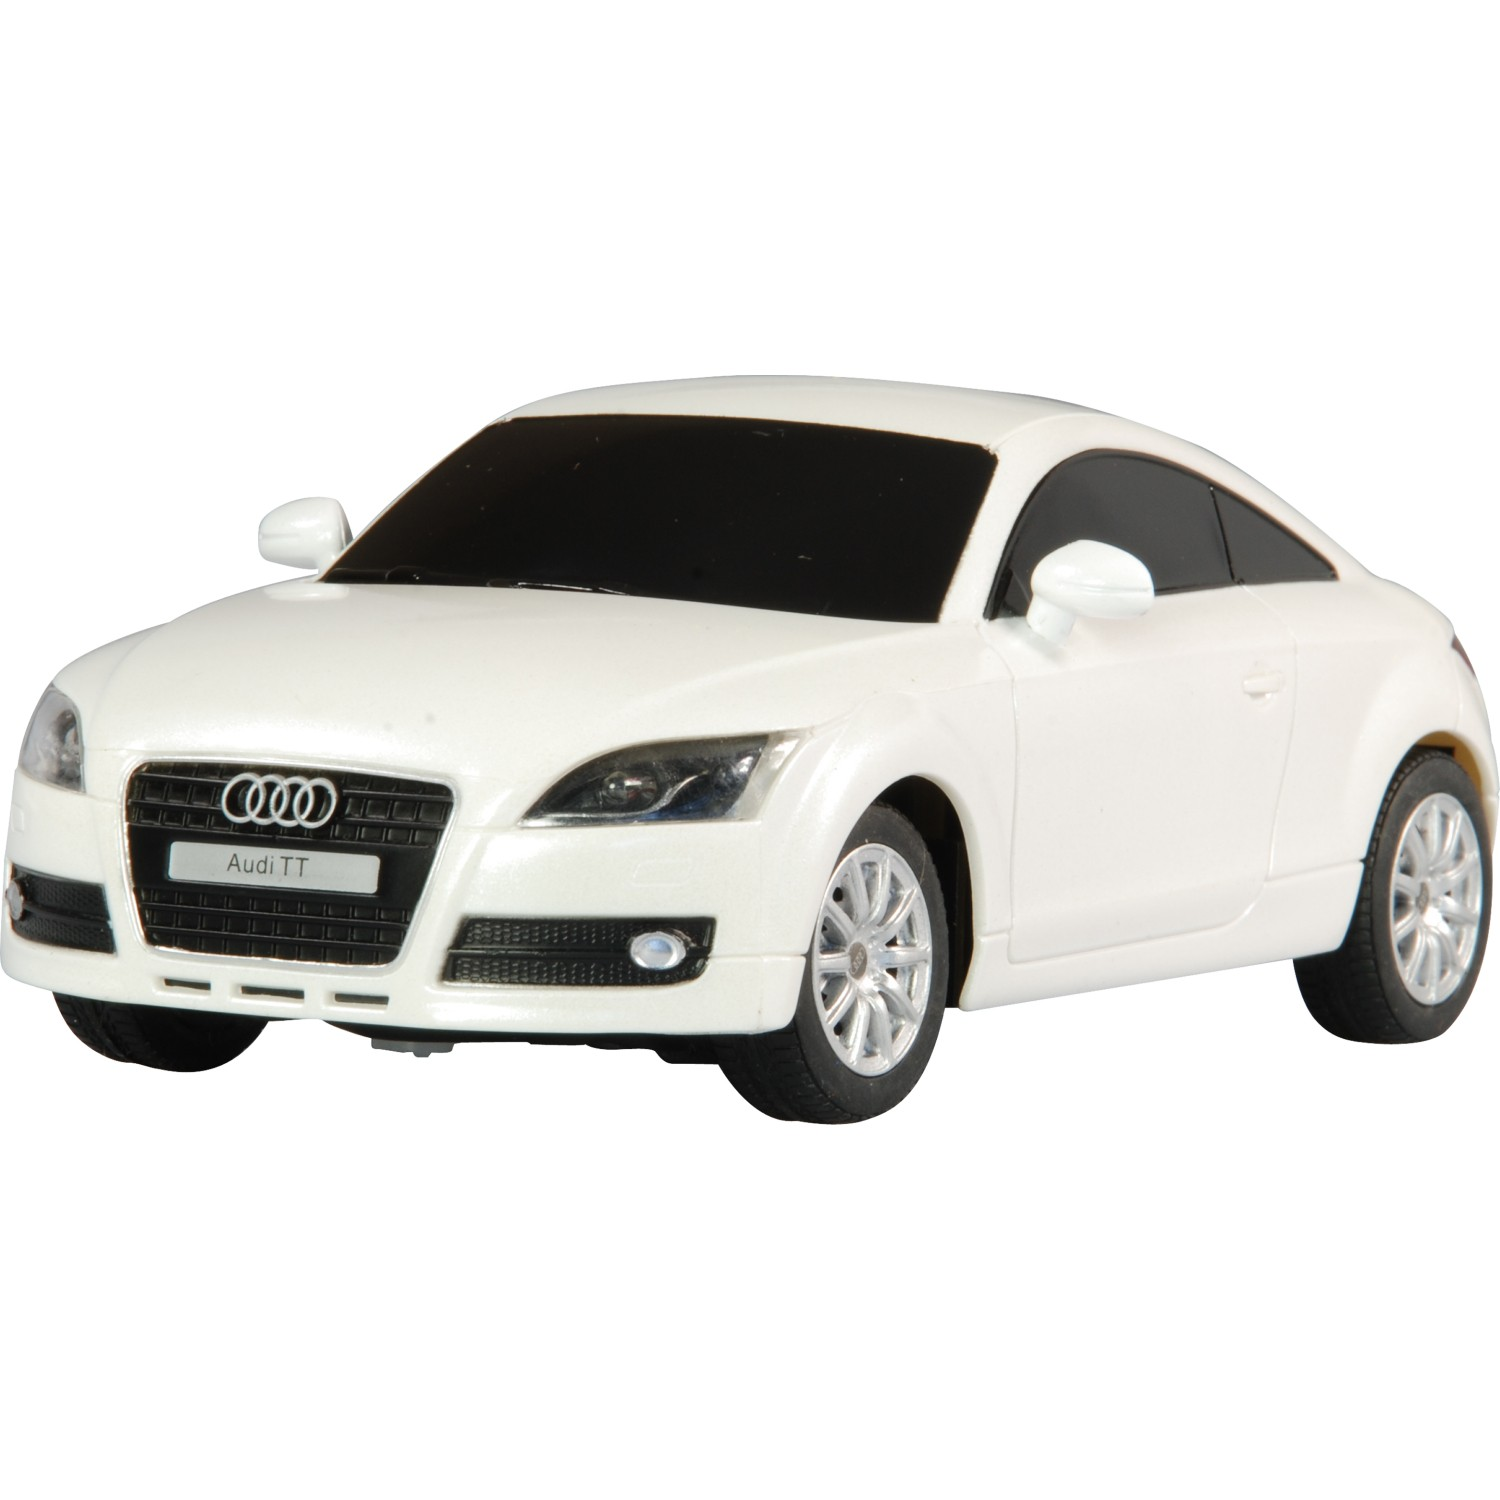 Buy Audi Tt Remote Control Car New In Pakistan BuyOyepk - Audi remote control car